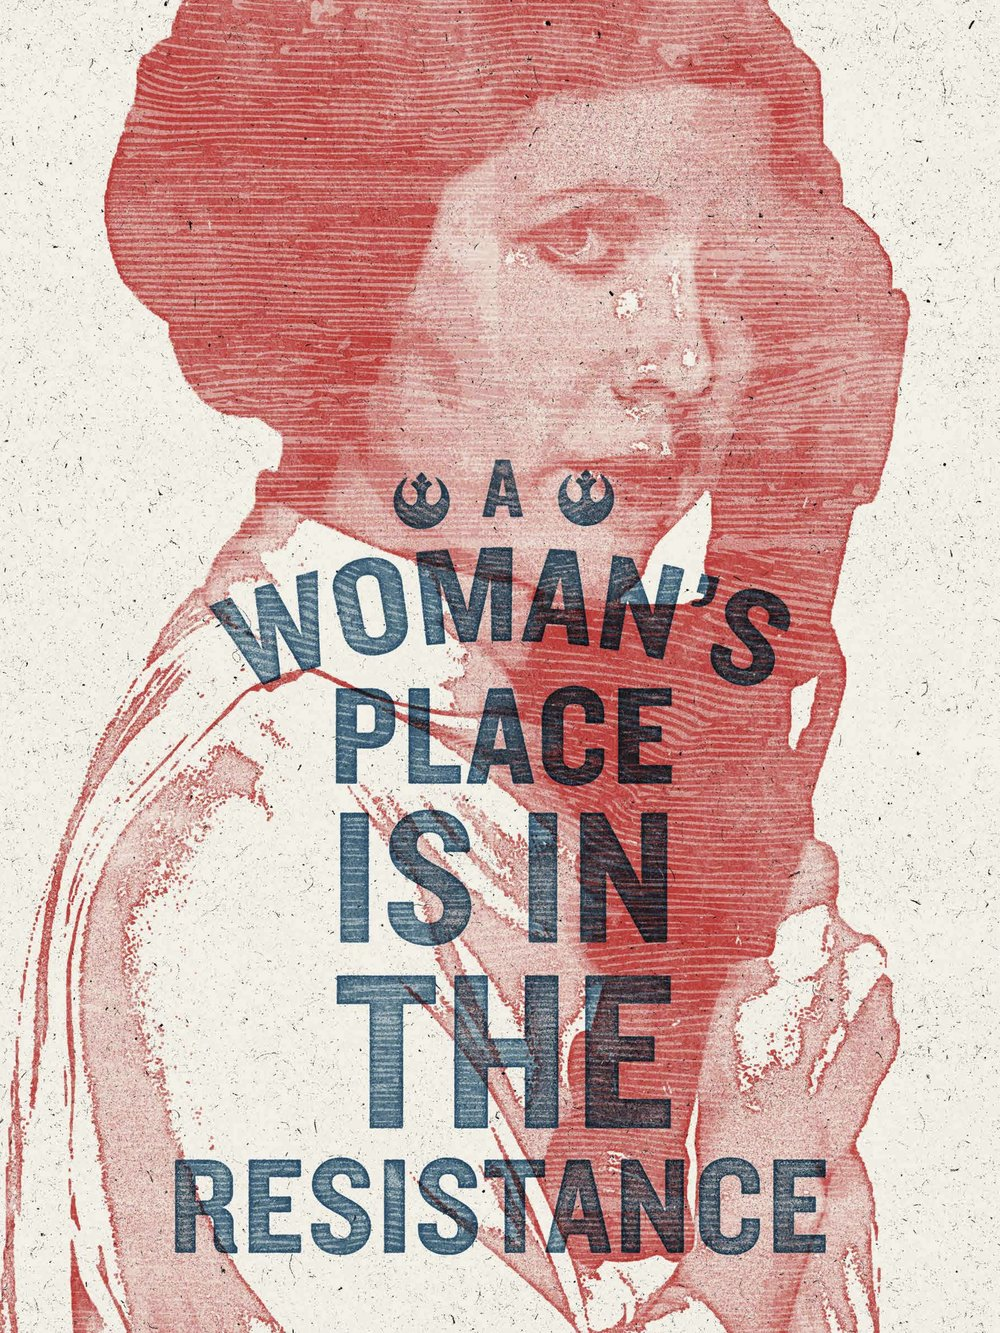 Protest Poster from ladieswhodesign.com